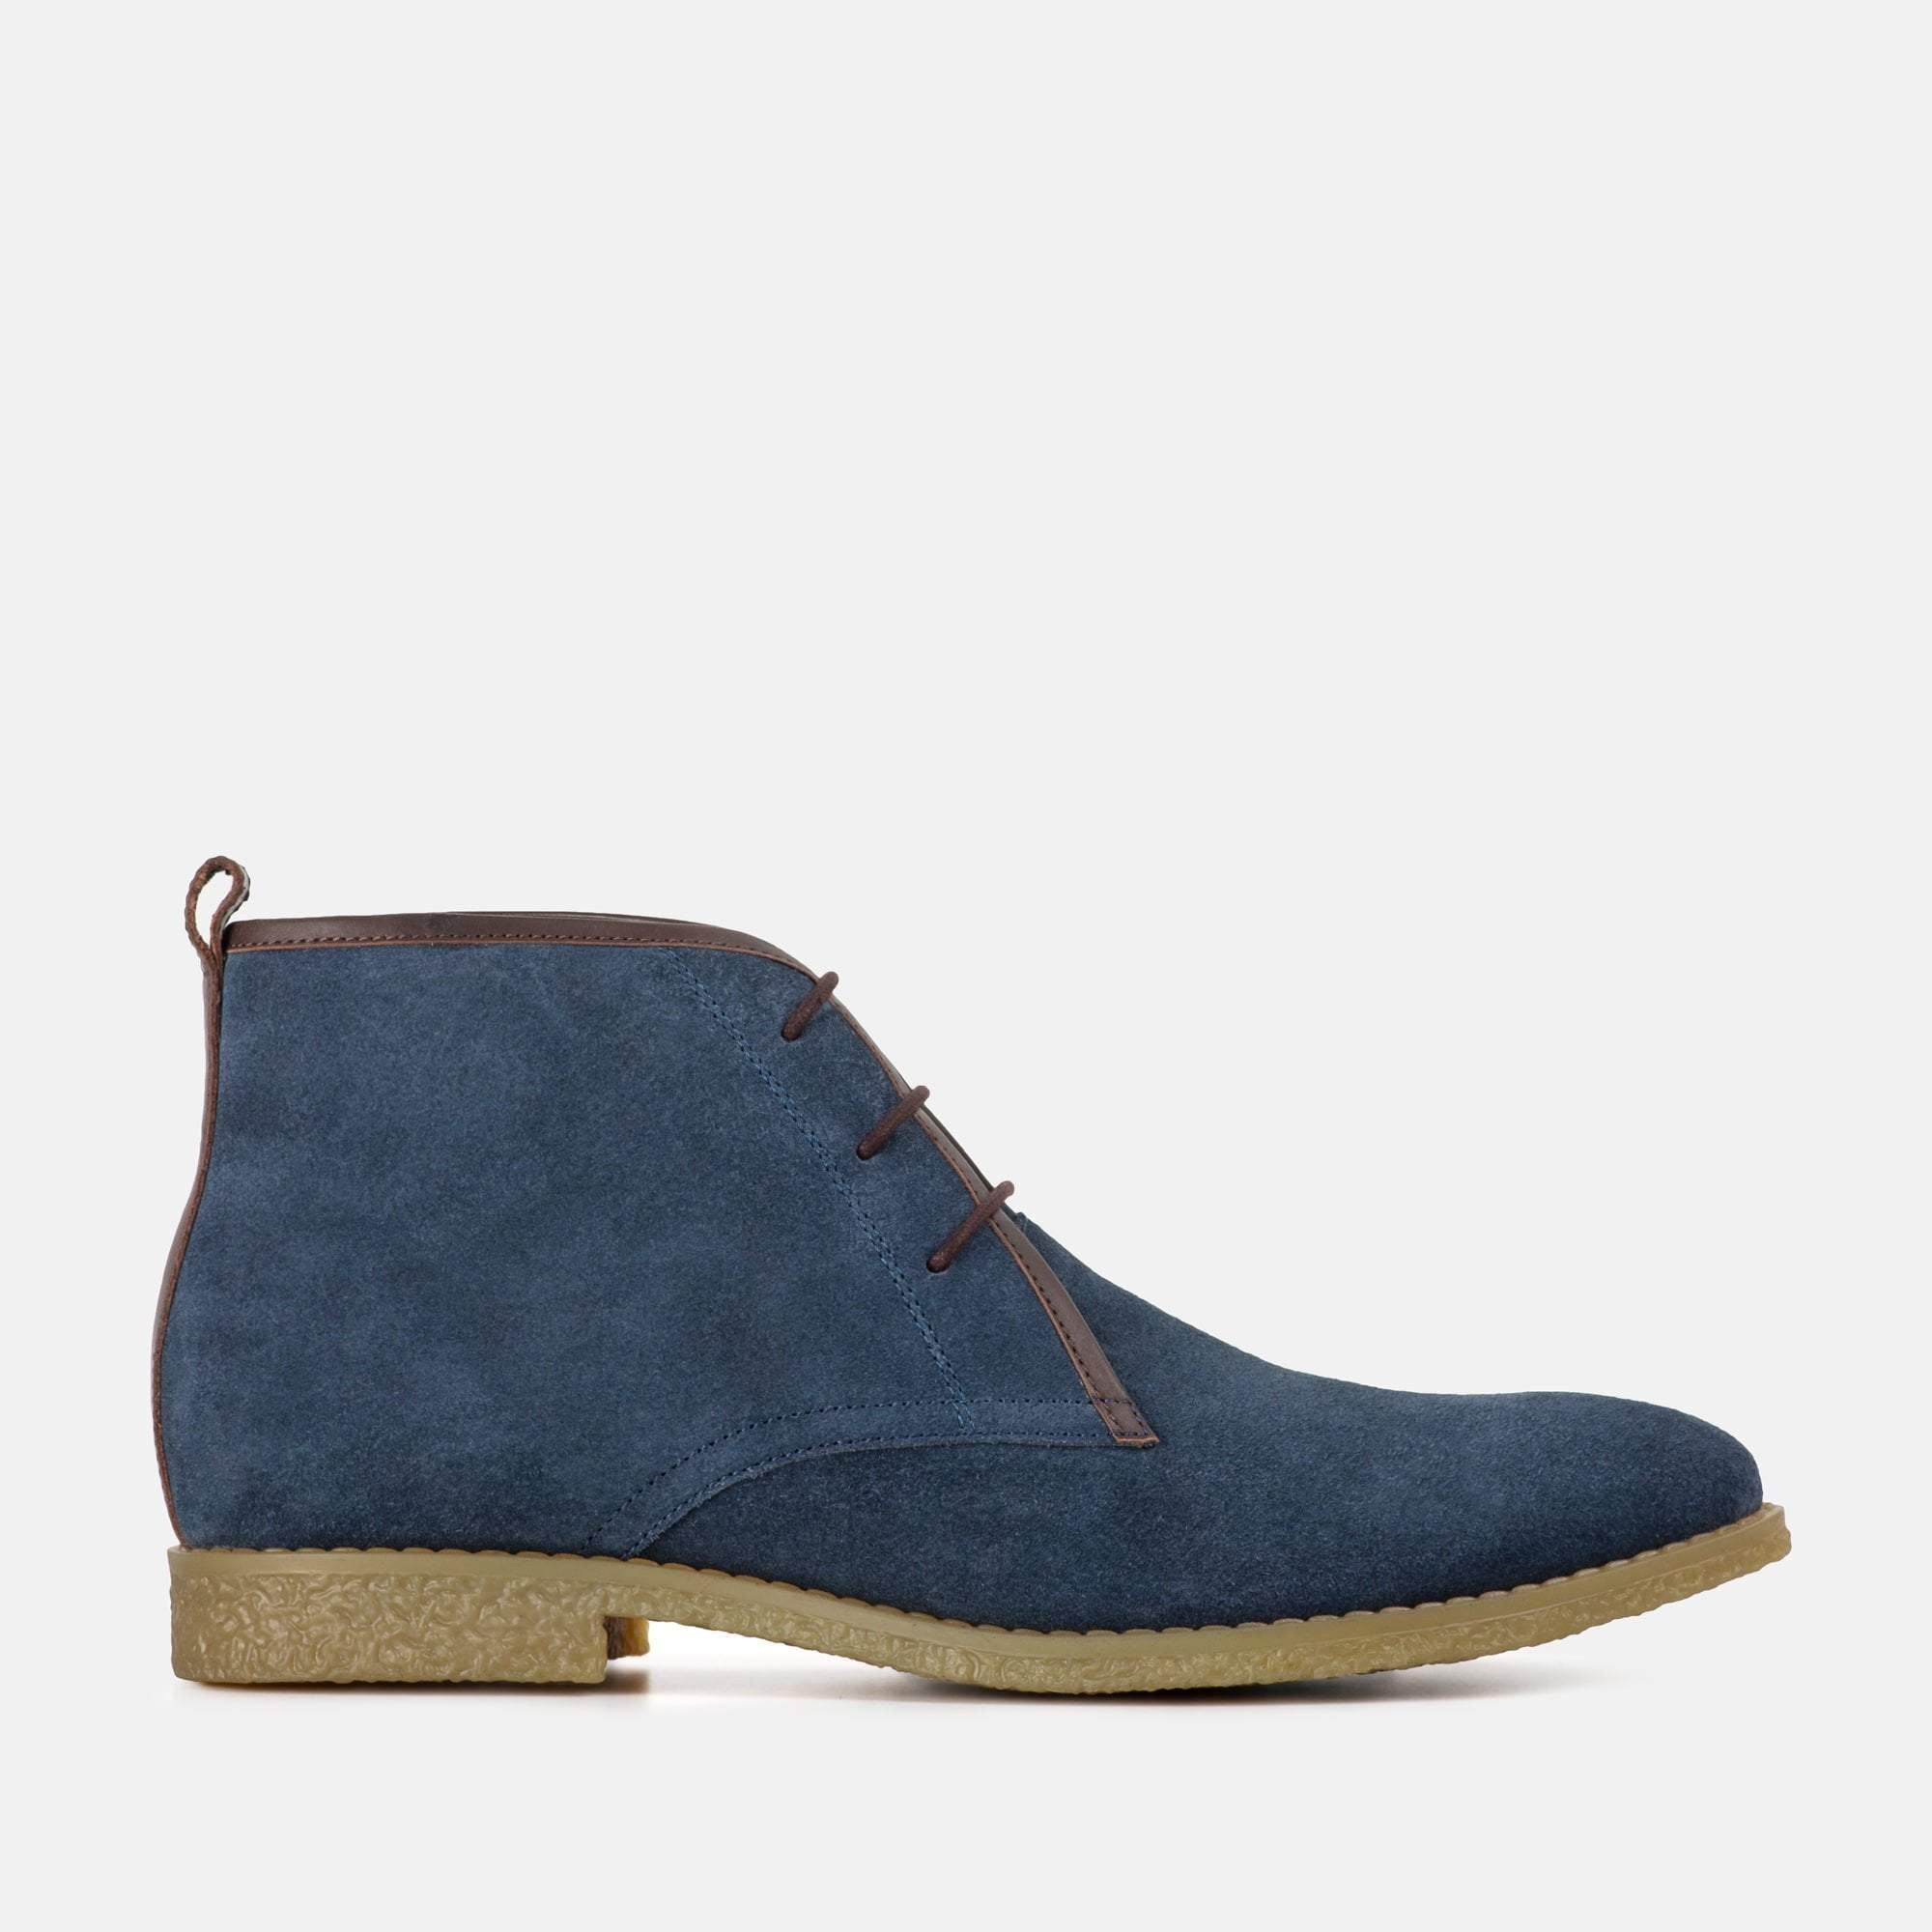 Redfoot Footwear UK 6 / EURO 39 / US 7 / Navy / Suede JACKSON NAVY